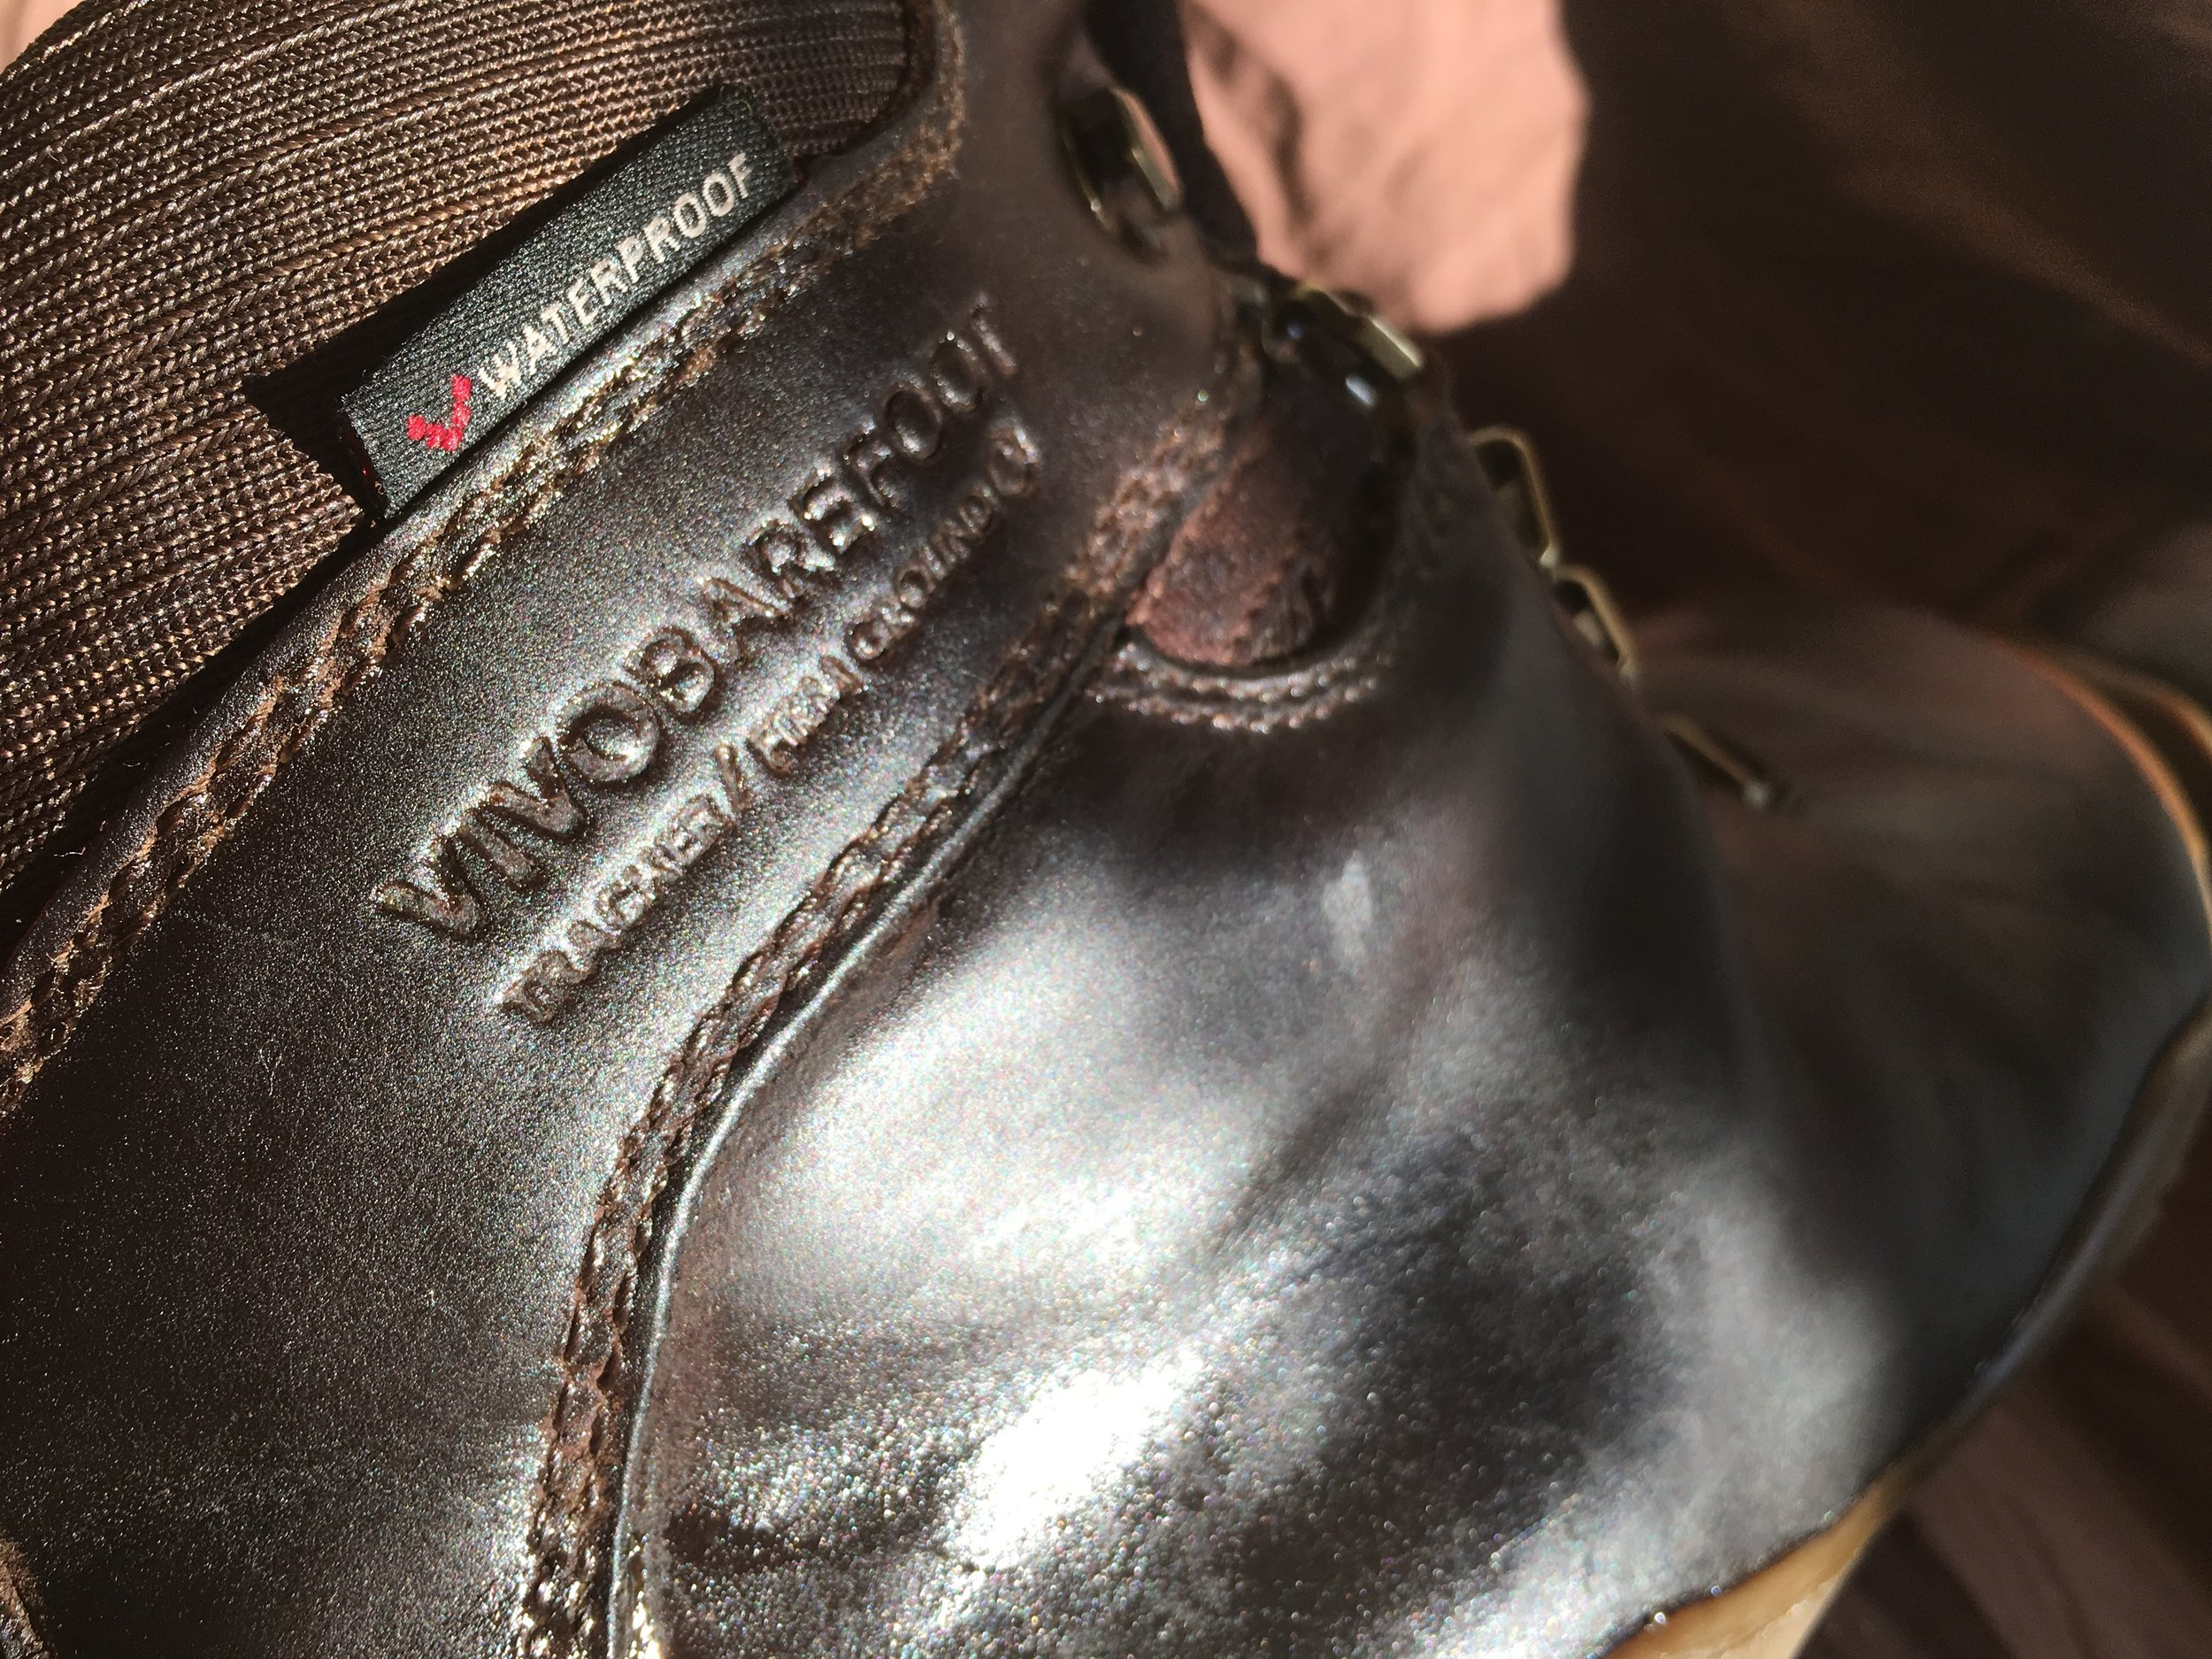 cleaning your leather boots.JPG